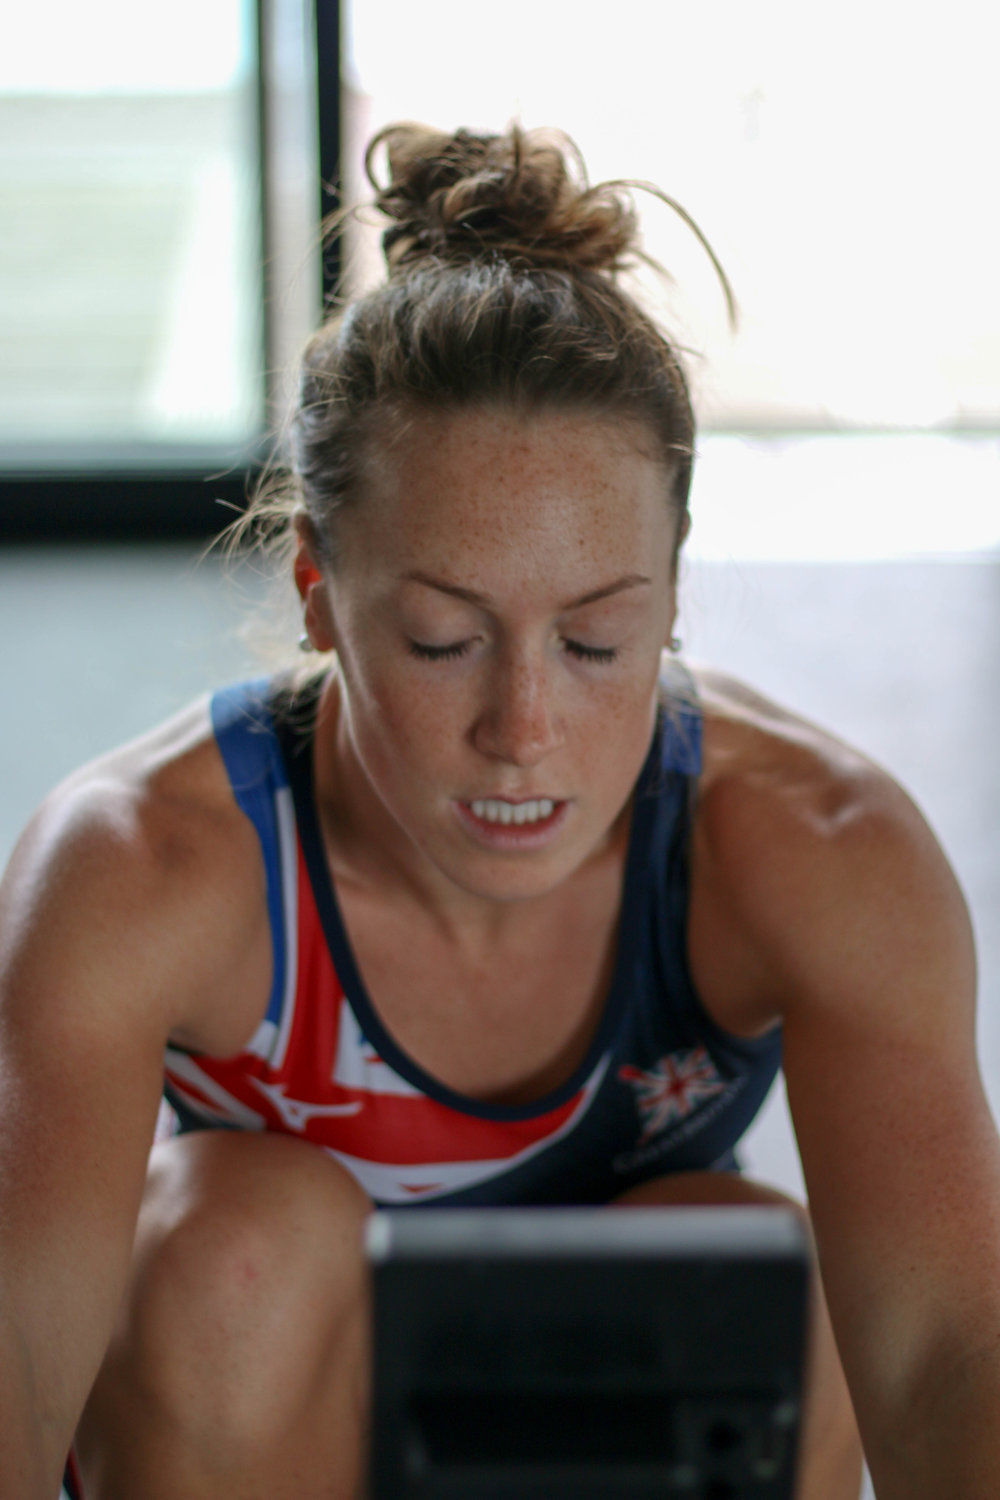 womens-sport-karen-bennett-rowing-athlete09.jpg